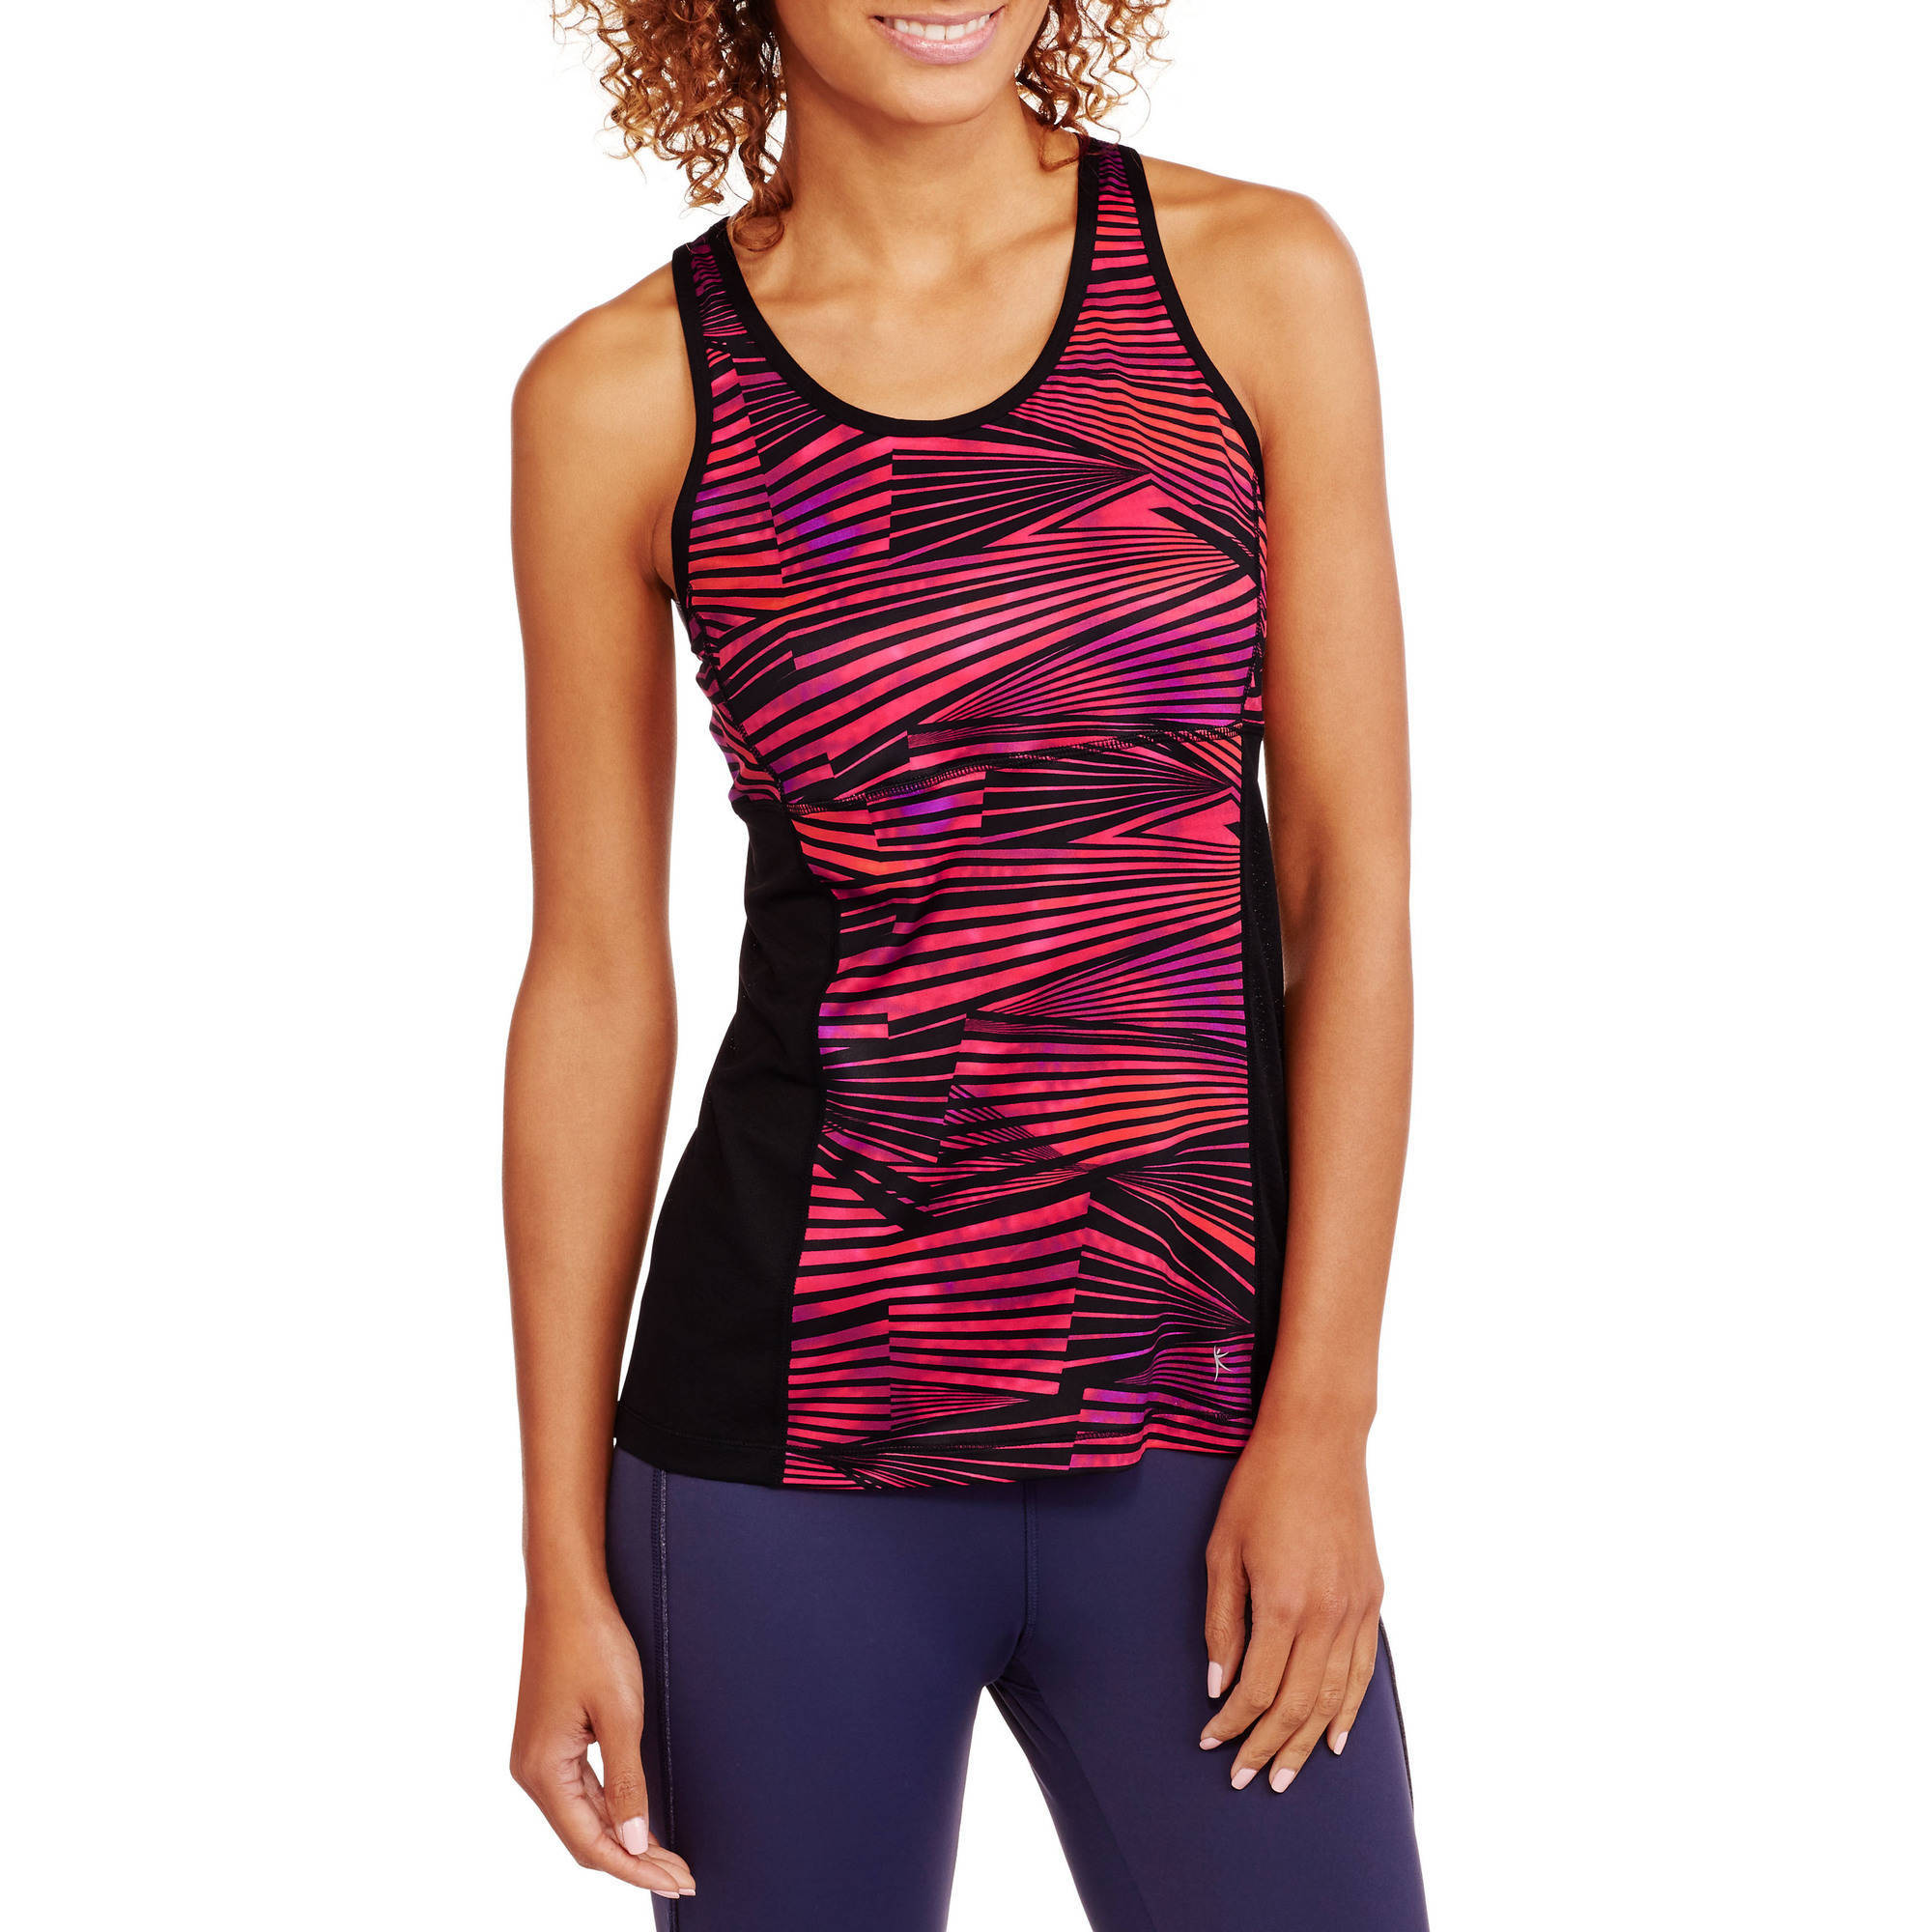 Danskin Now Women's Active Mesh Vented Tank with Strappy Back